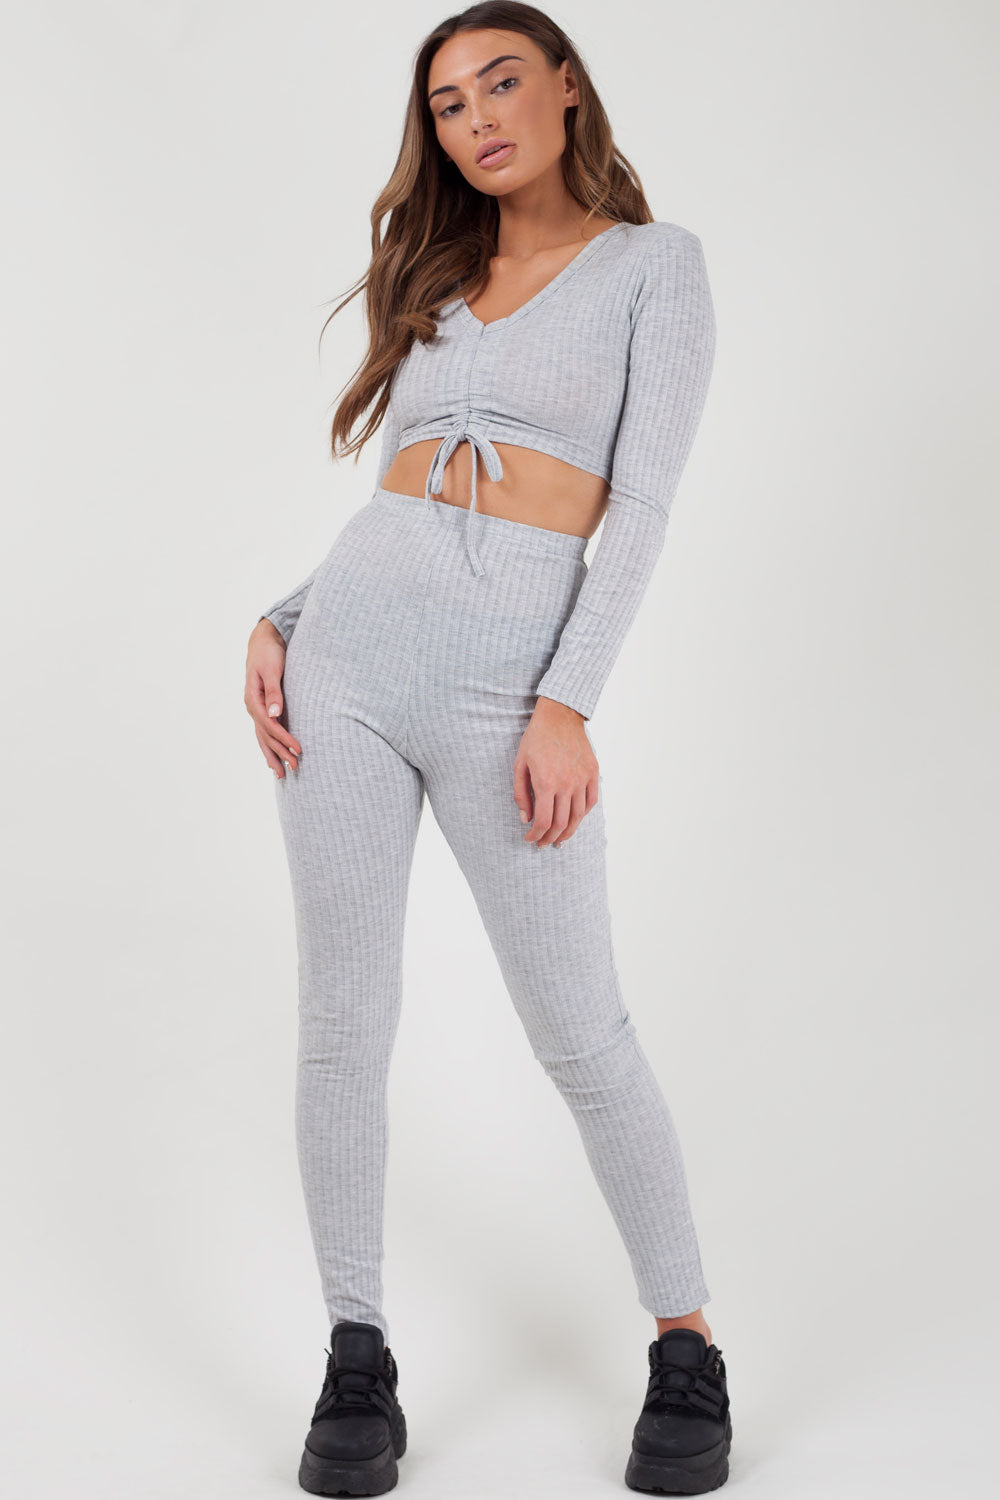 grey ribbed loungewear two piece set on sale uk